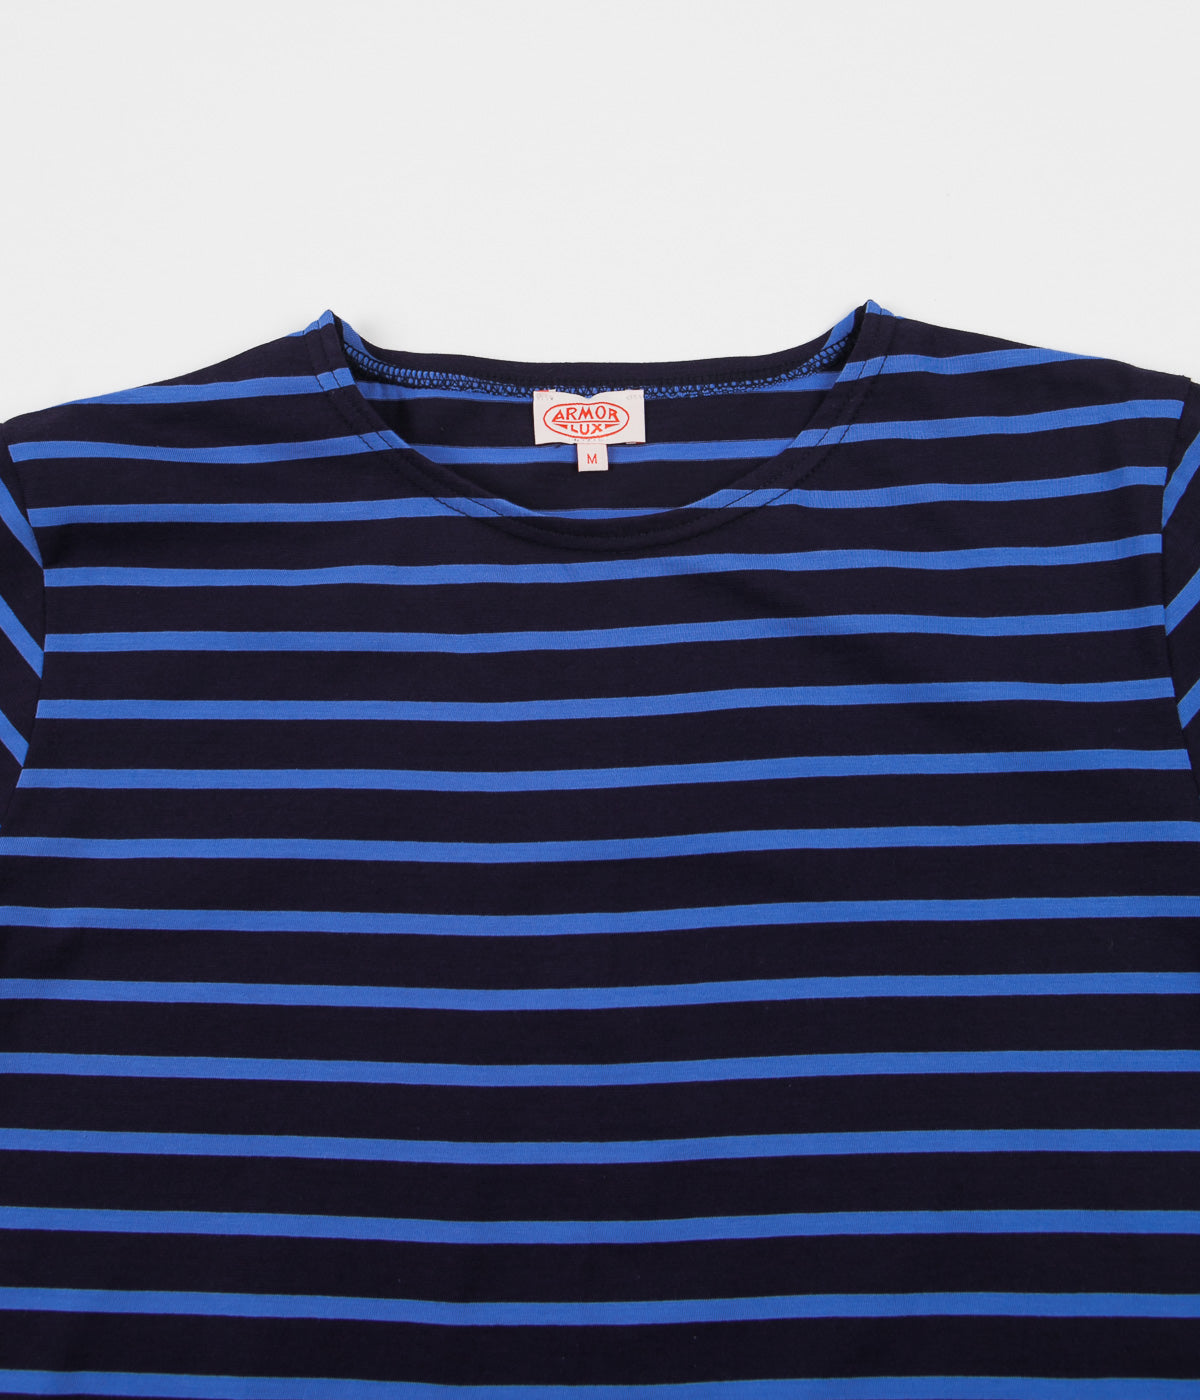 Armor Lux Striped Breton T-Shirt - Navy / Lapis